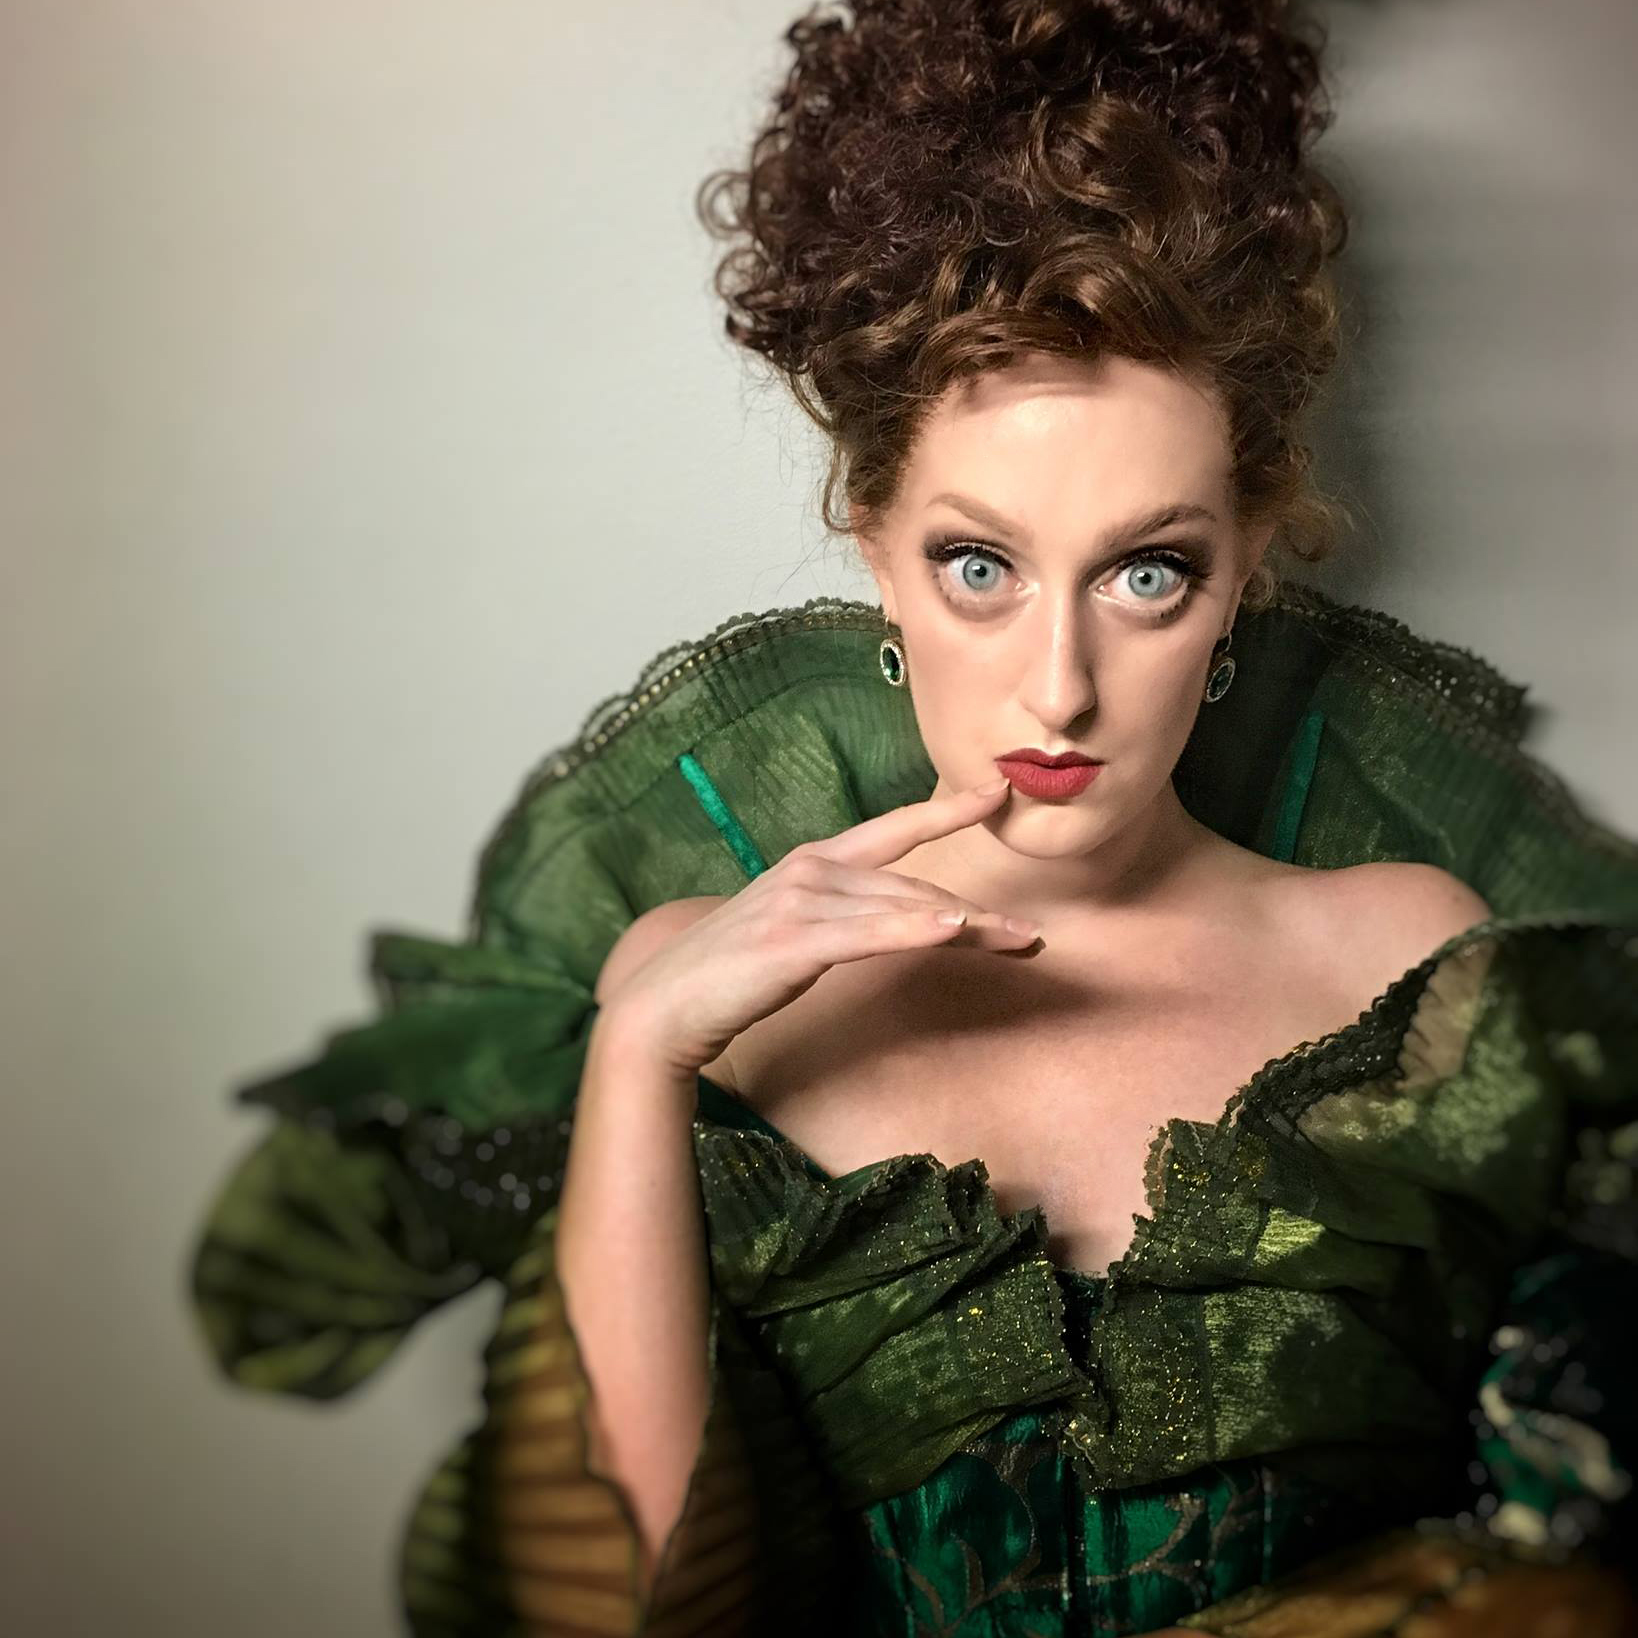 Chloe Fox as Lady of Ridicule. Photo by Ryan Hunt